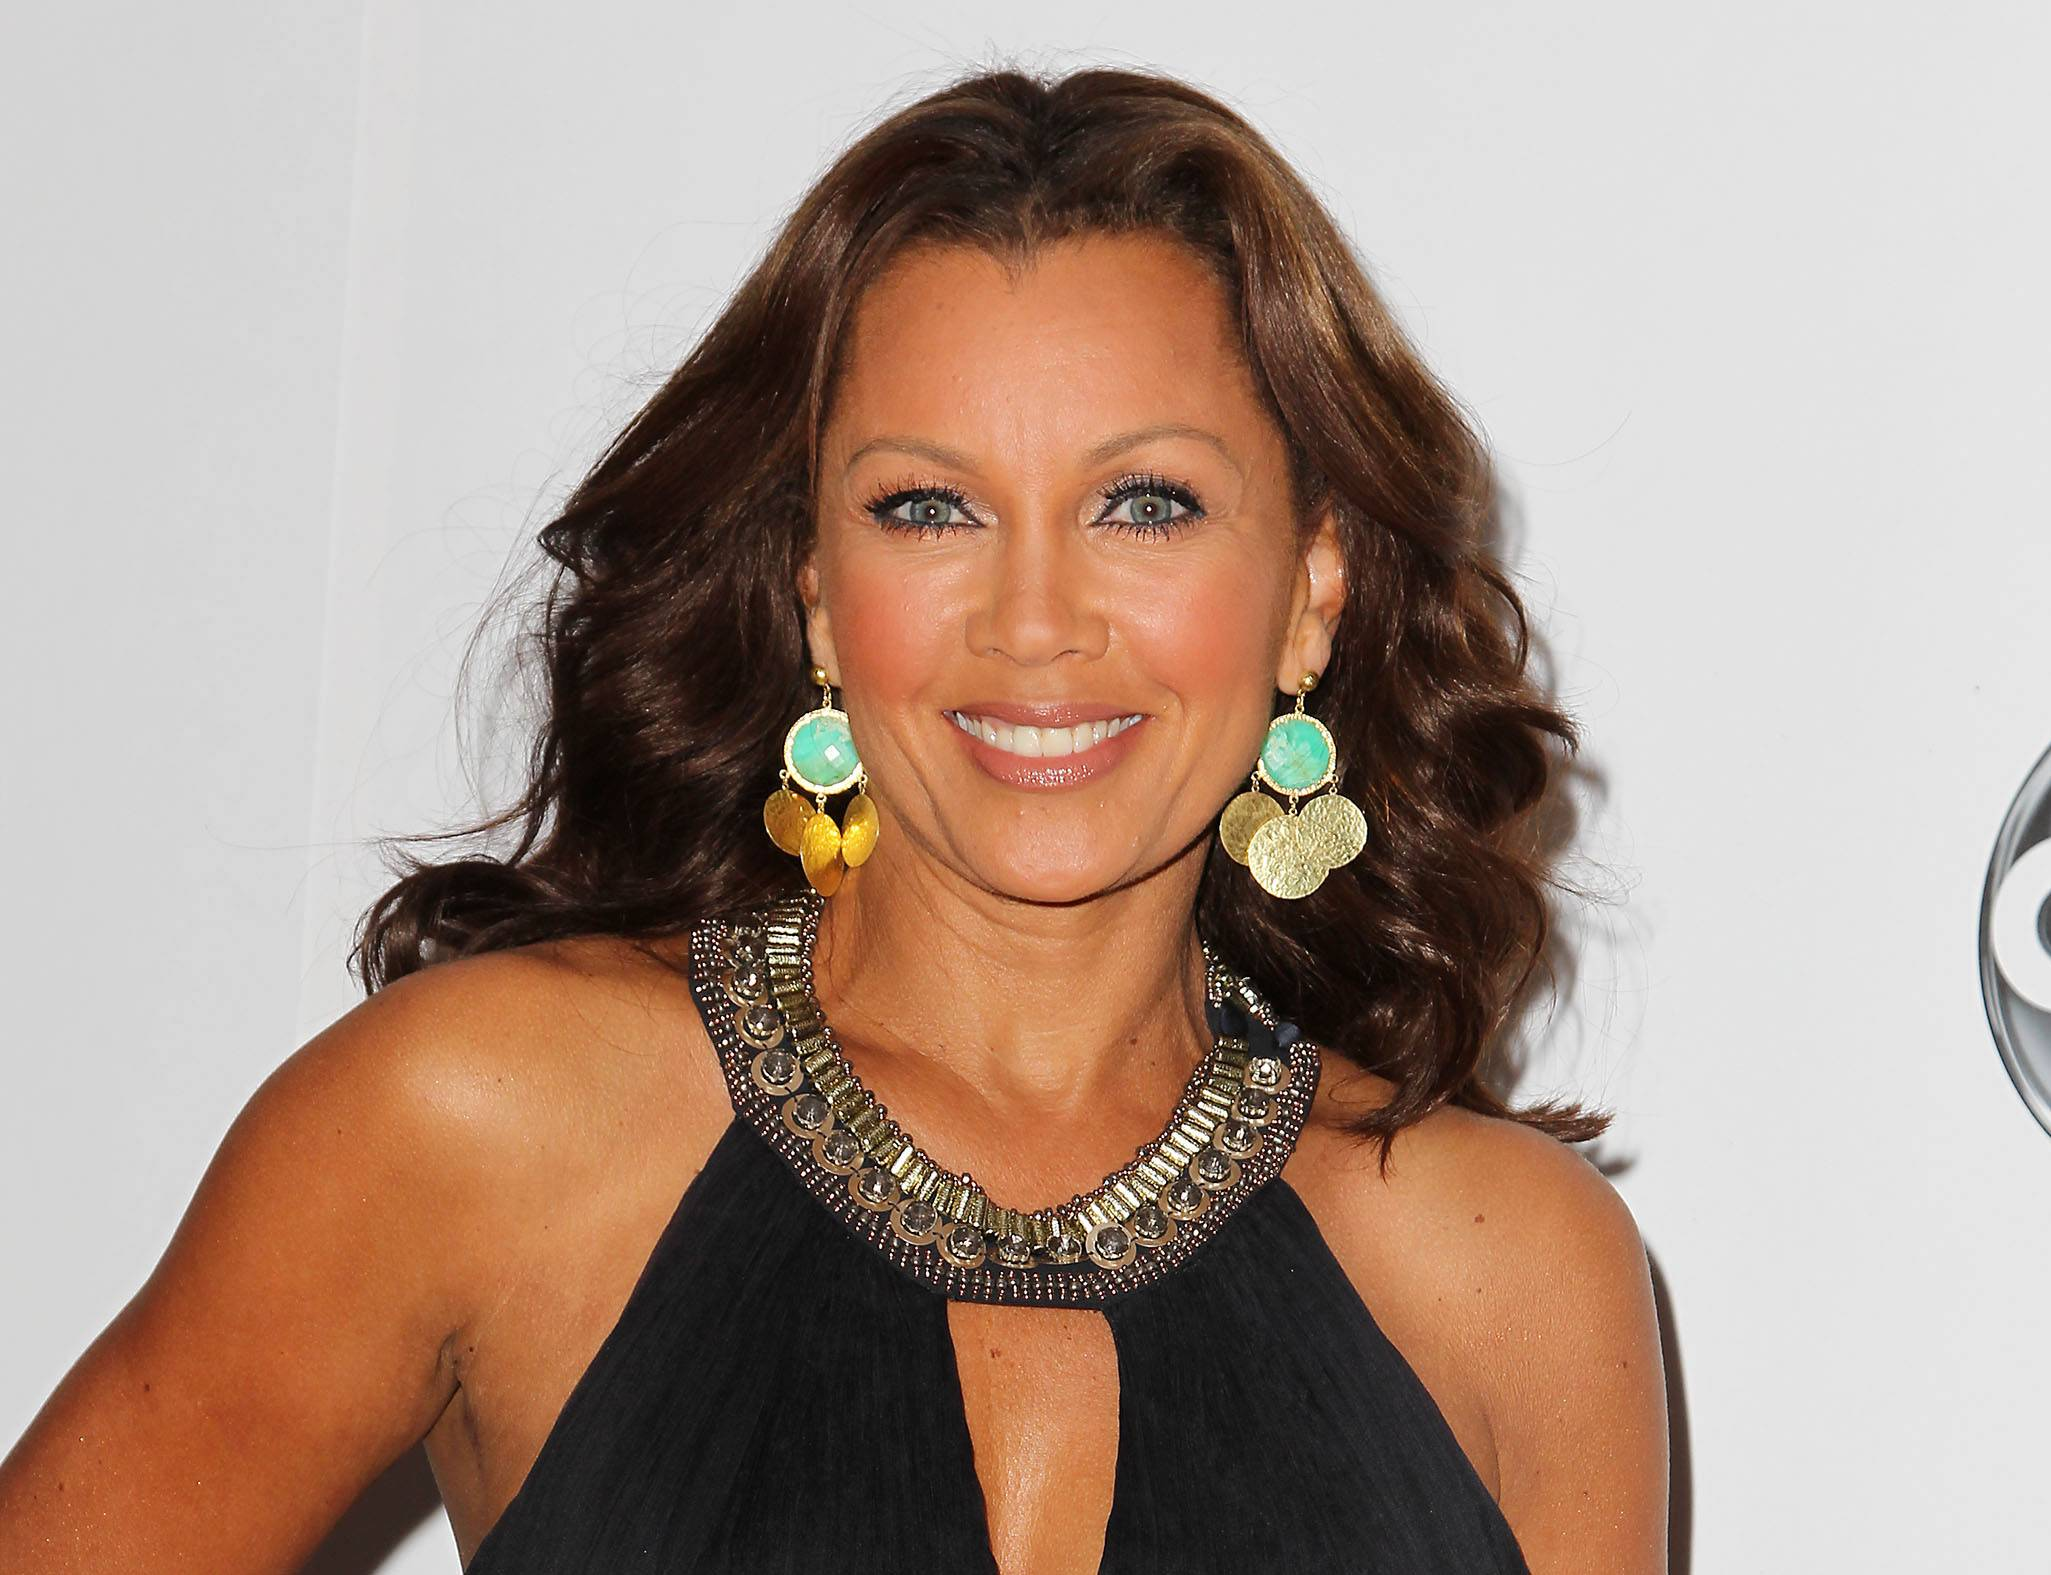 "Vanessa Williams announced after the matinee performance of ""After Midnight"" that she has signed up for a stint in the Broadway show celebrating Duke Ellington's years at the Cotton Club nightclub. She will start as a guest vocalist on April 1 and end May 11."